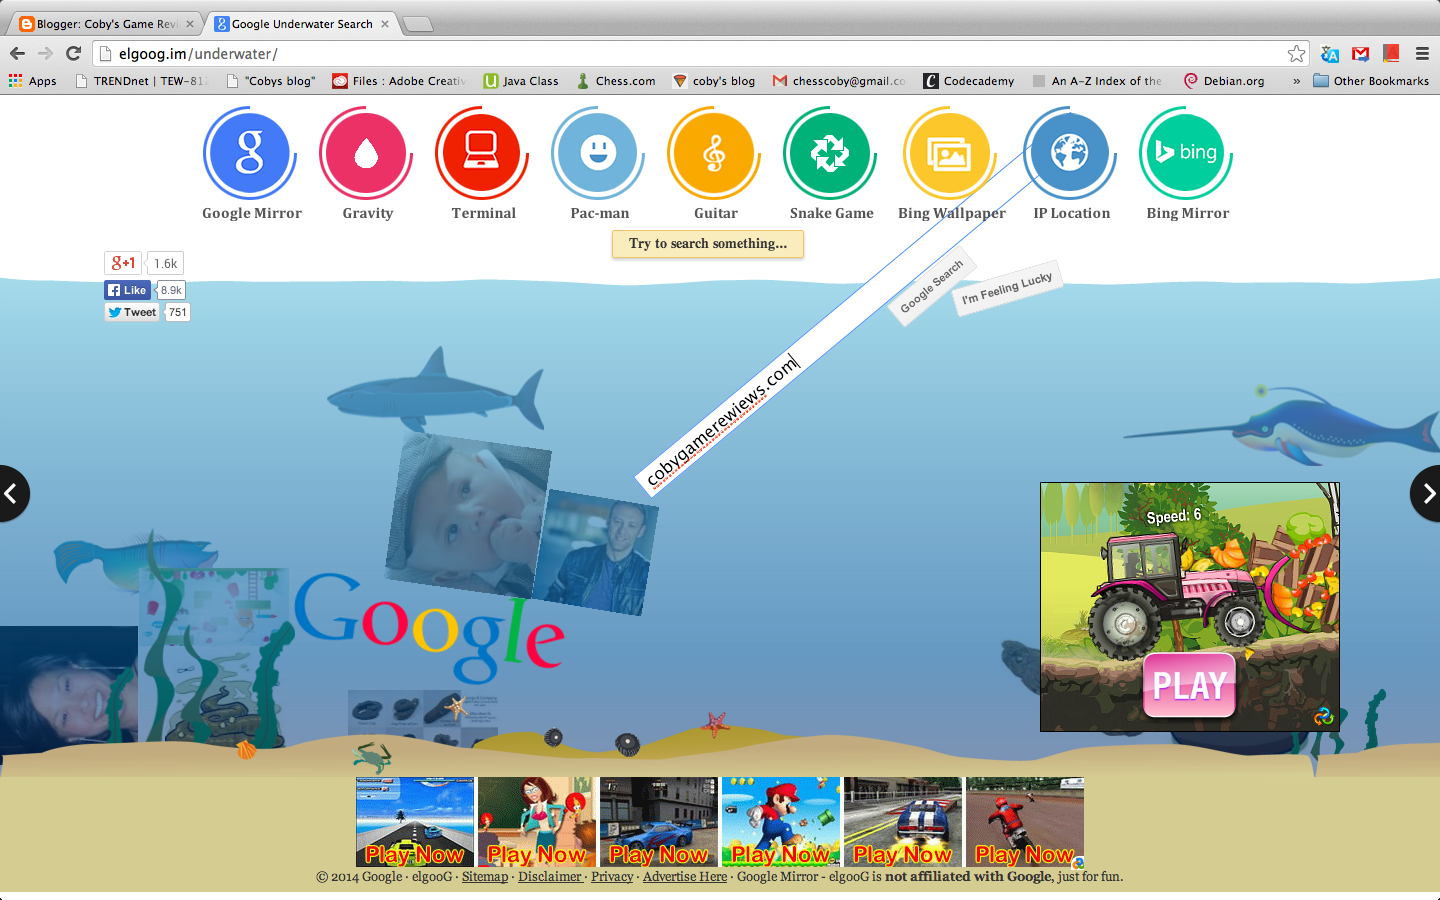 Google underwater mr doob - Google Under Water Where You Can Search Things Under Water And It Shows Images Http Elgoog Im Underwater